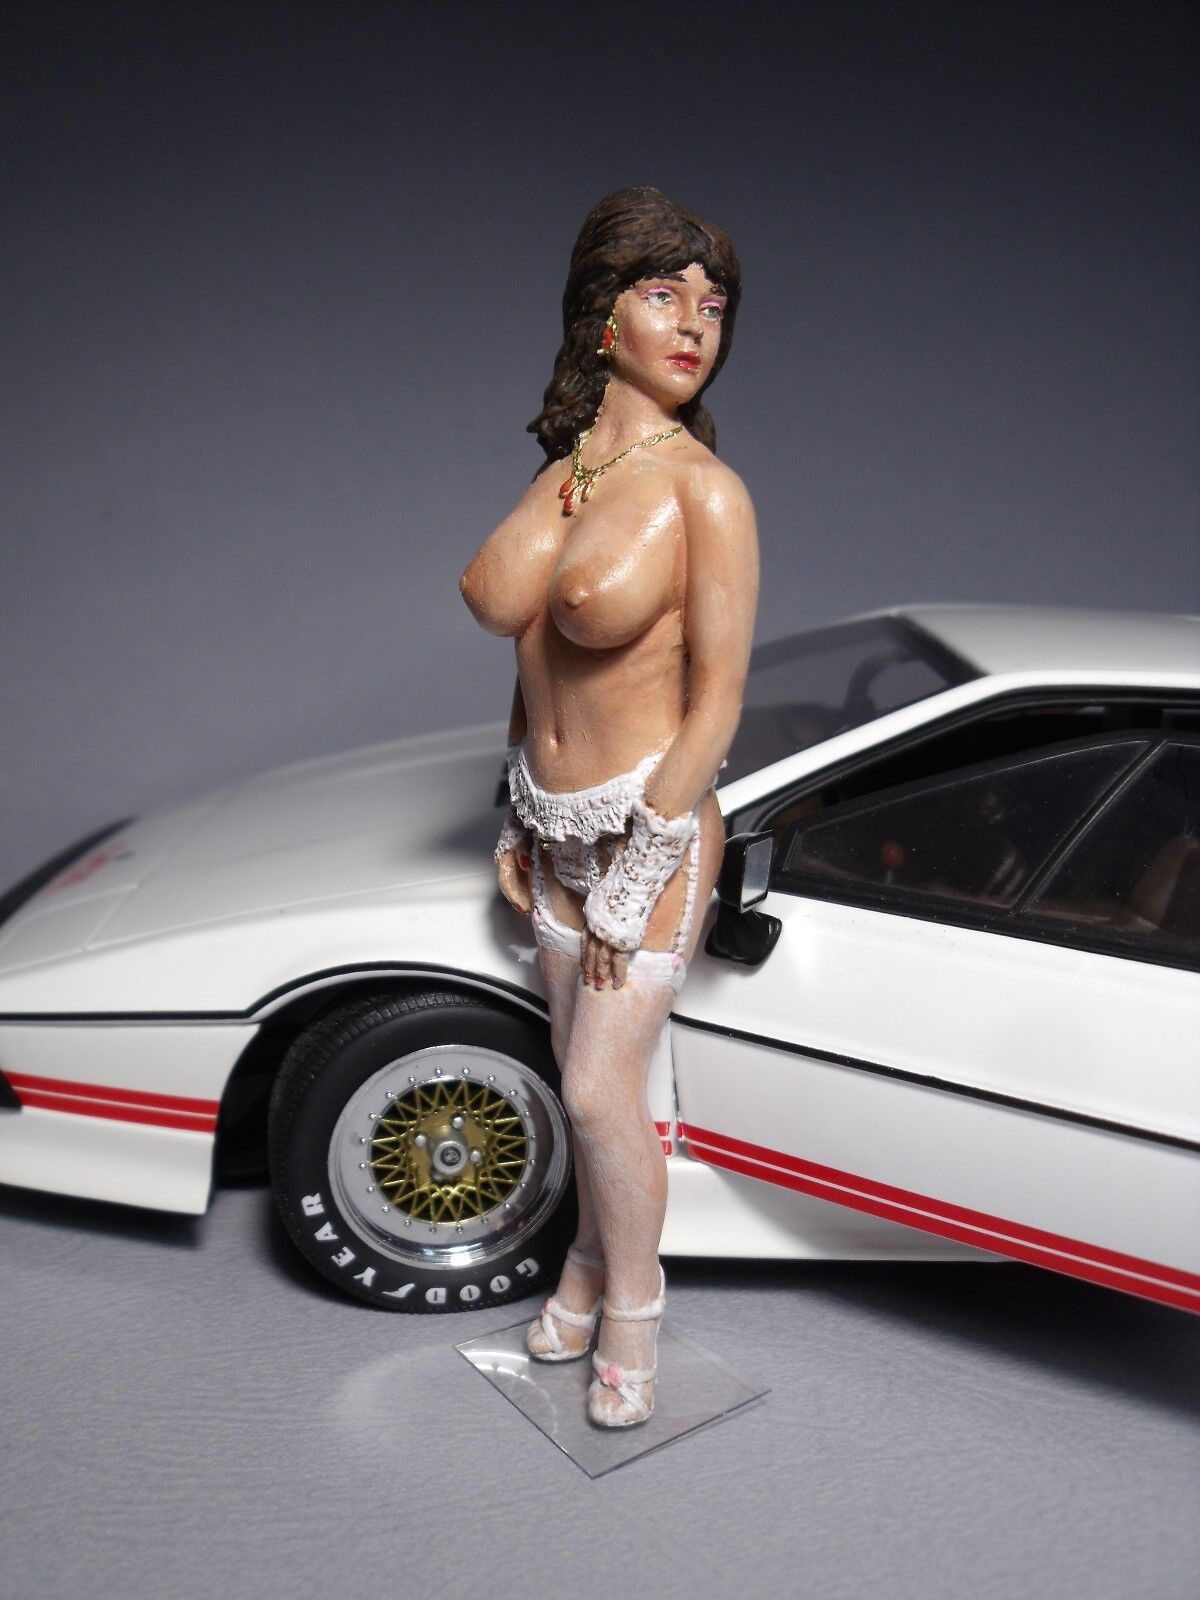 BABETTE  1 18  PAINTED  GIRL  FIGURE  BY  VROOM  FOR  LOTUS  ESPRIT  AUTOART